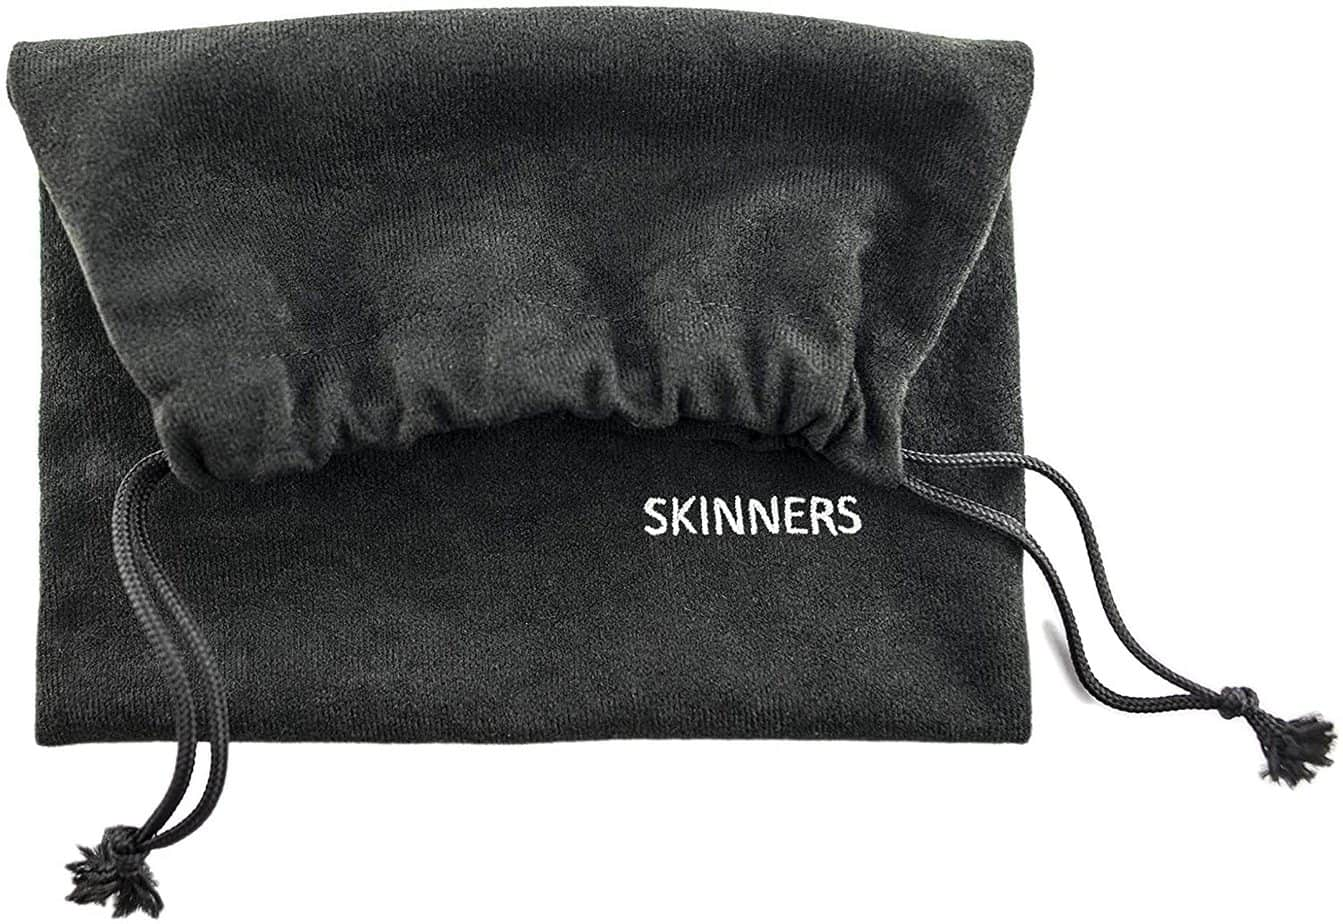 Skinners - Minimalist Barefoot Sock Shoes - Carry Bag